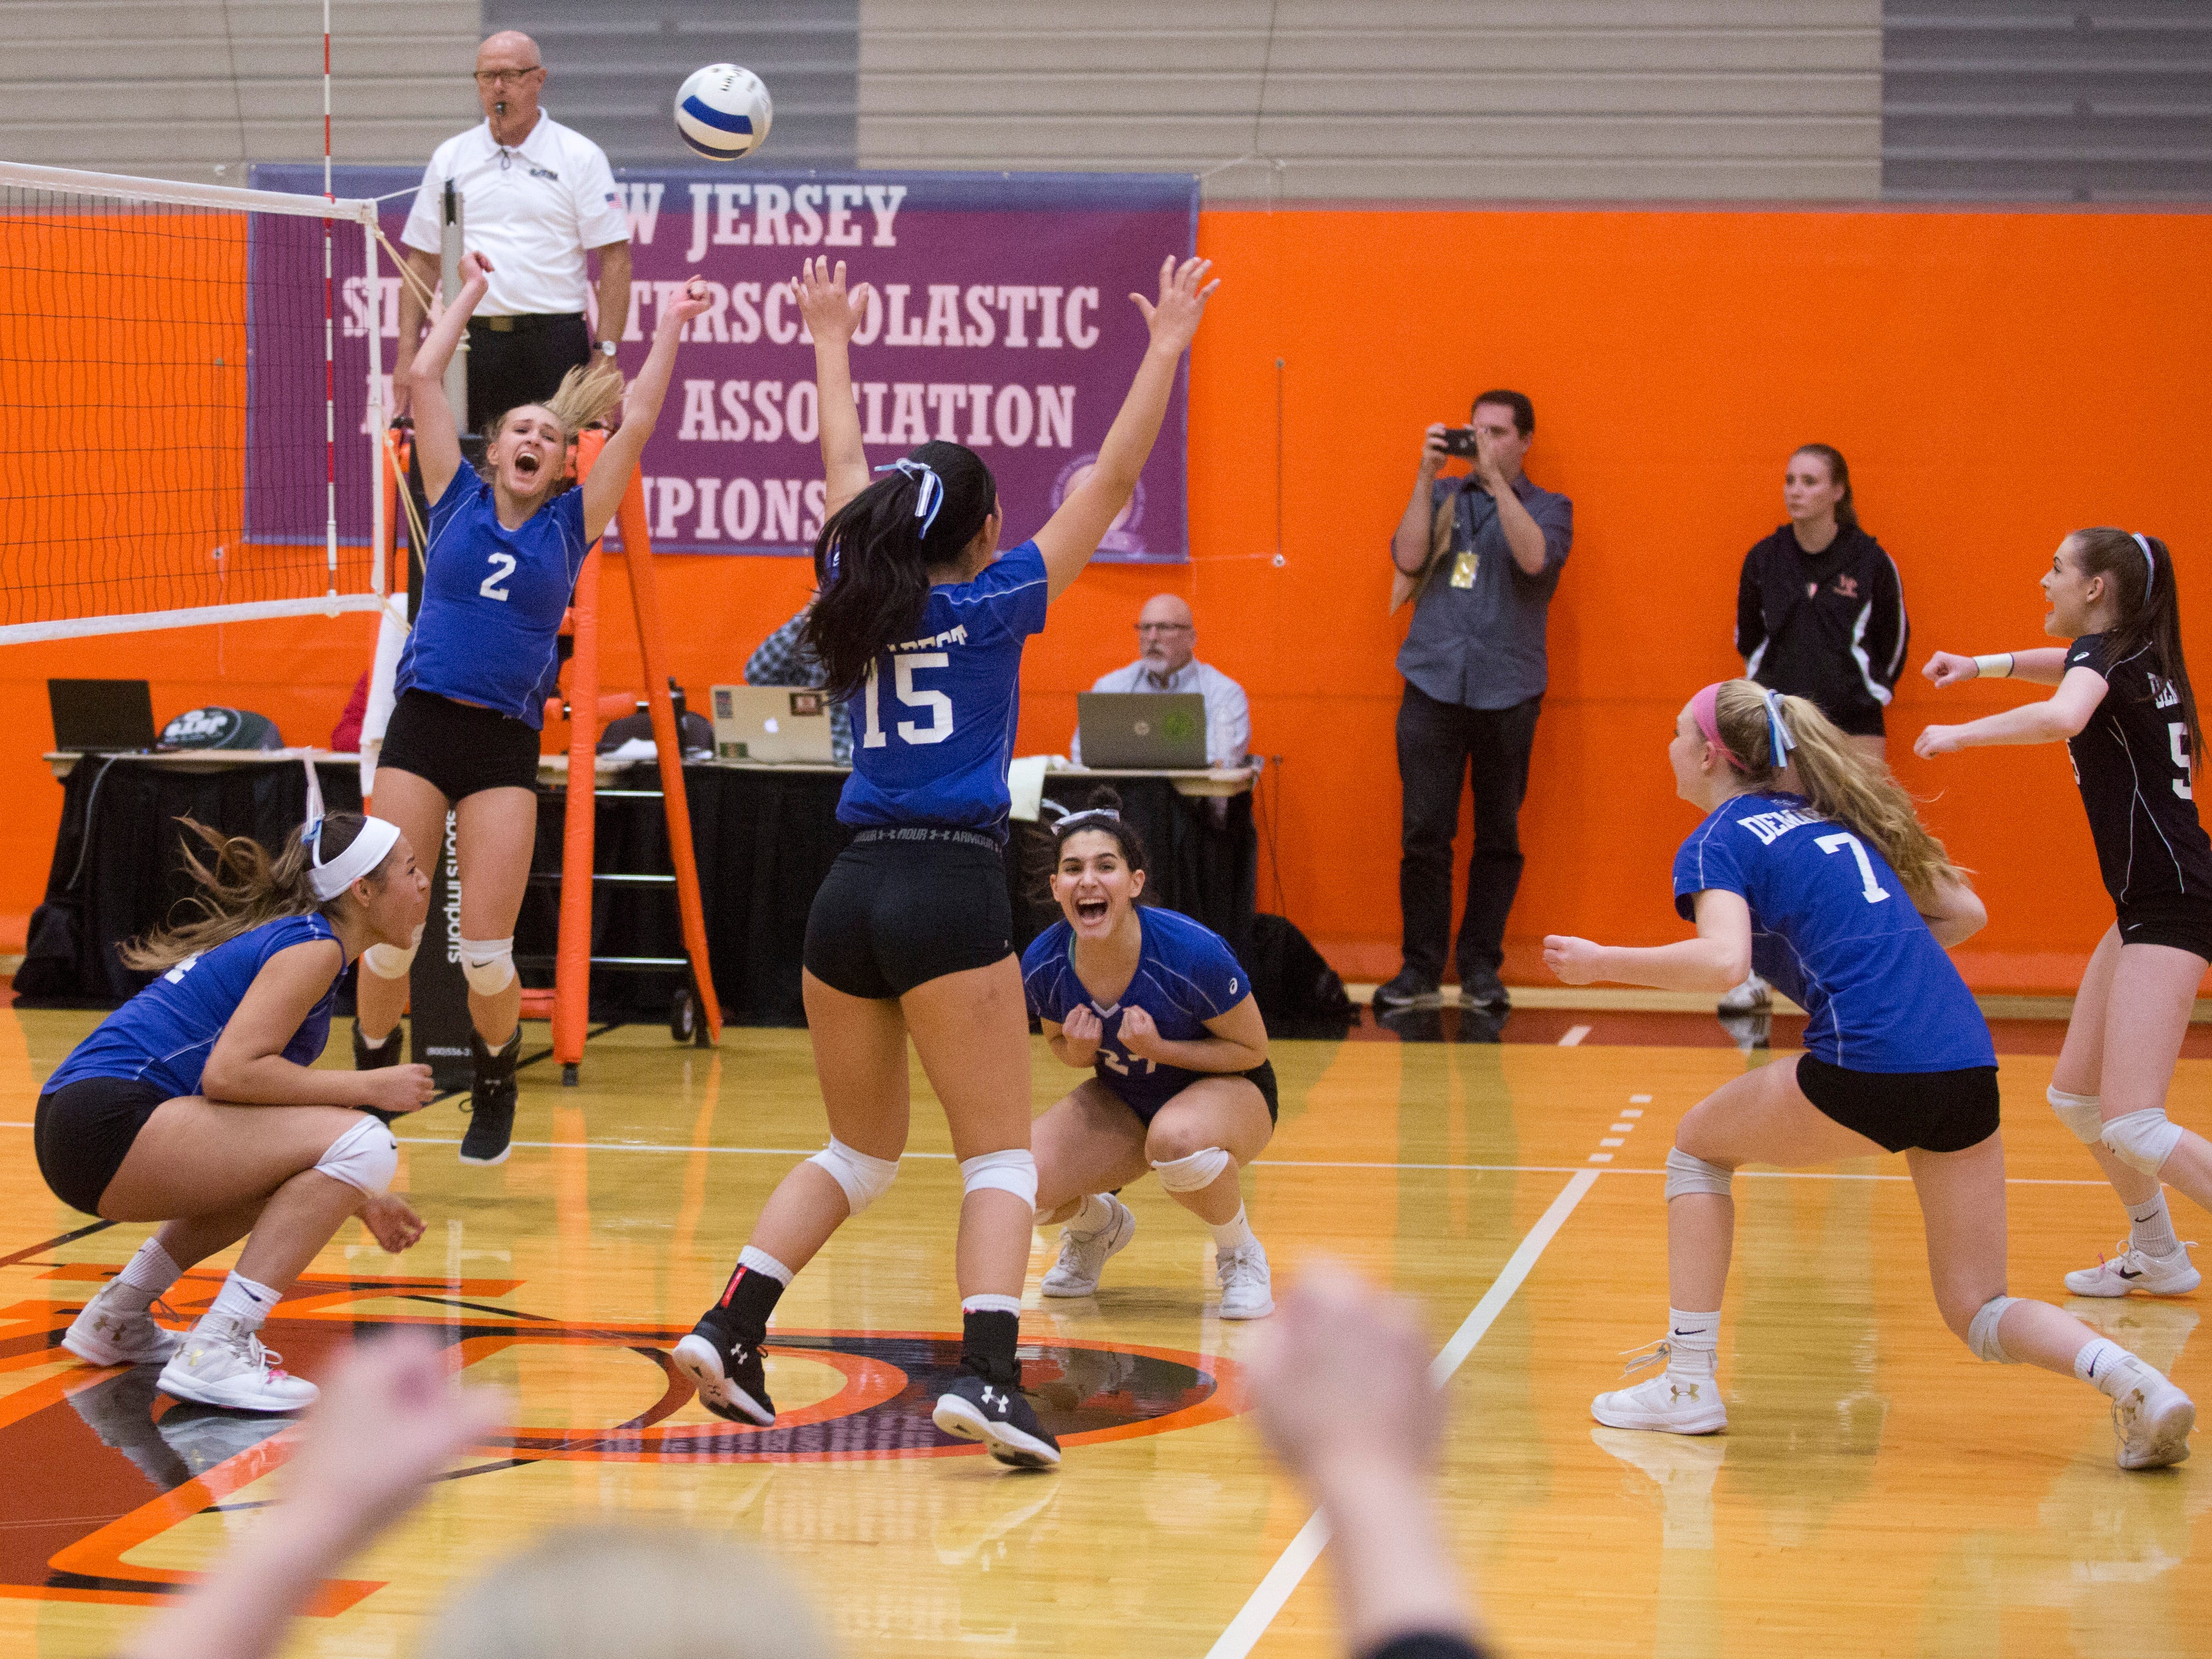 Northern Valley Regional at Demarest celebrates after winning the NJSIAA volleyball group two finals at William Paterson Recreation Center. Demarest won 25-13, 25-9.